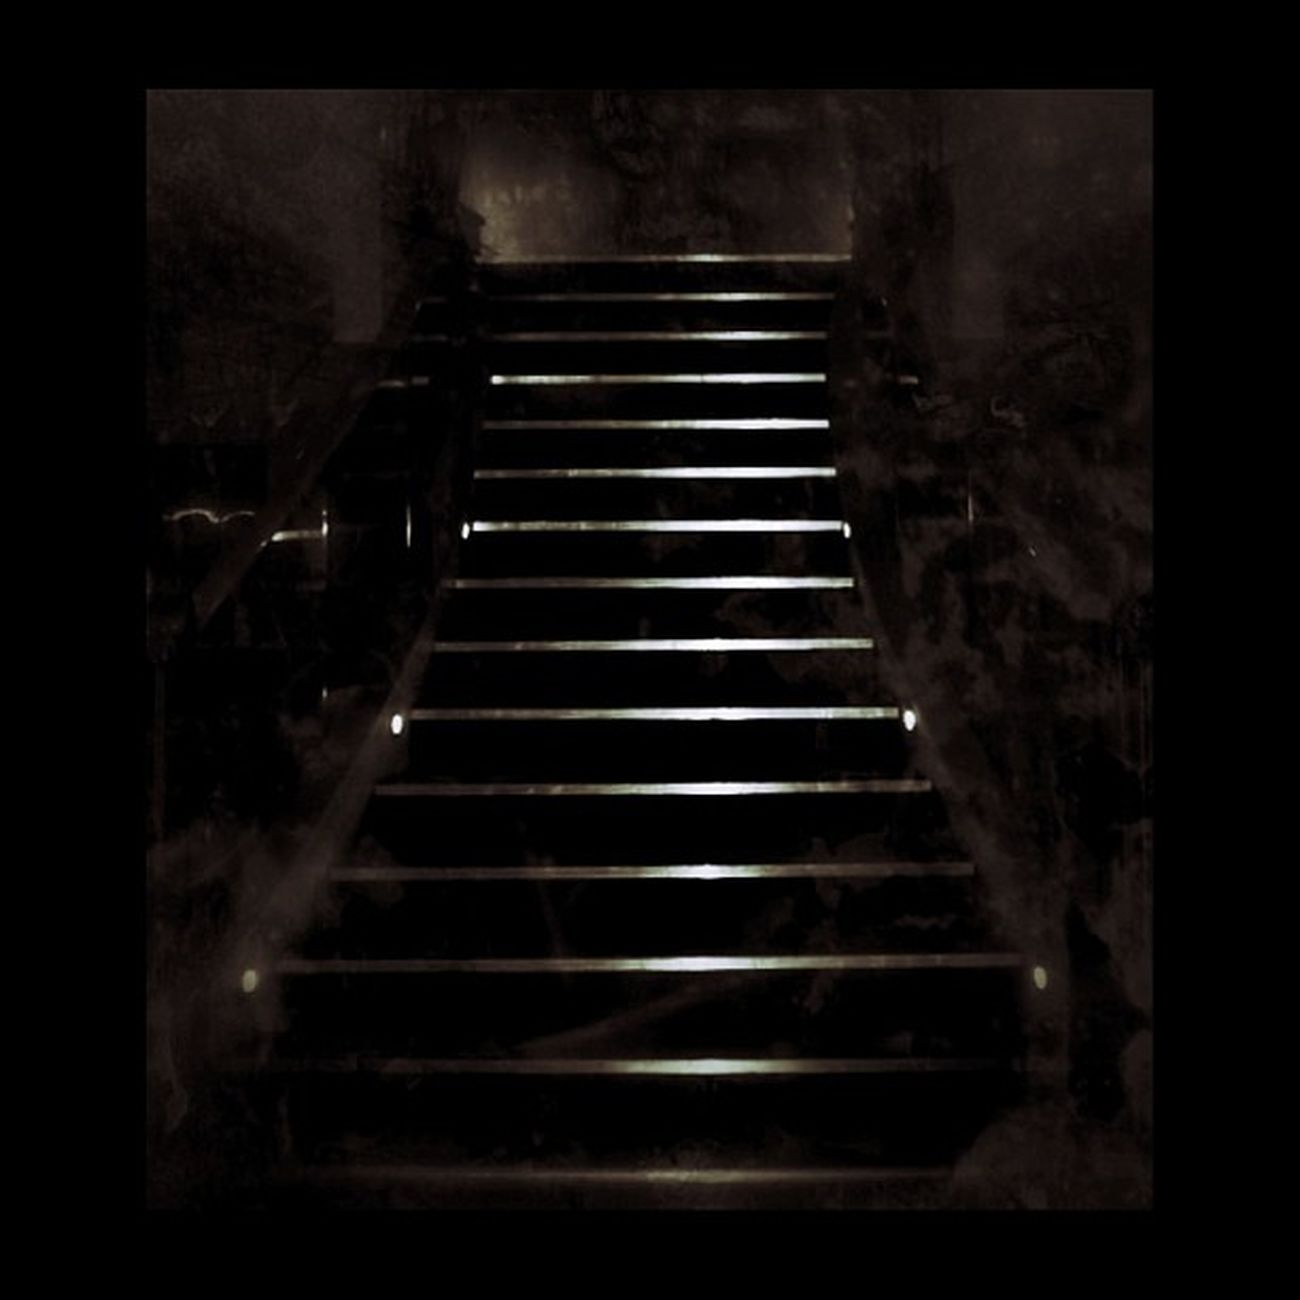 """Yesterday, upon a stair, I met a man that wasn't there... #creepy #igdungeon #instadark #stairs #dark_arts #masters_of_darkness Creepy Stairs Igdungeon Masters_of_darkness Ig_4every1_spooky Instadark Pj_creepystairs Dark_arts"